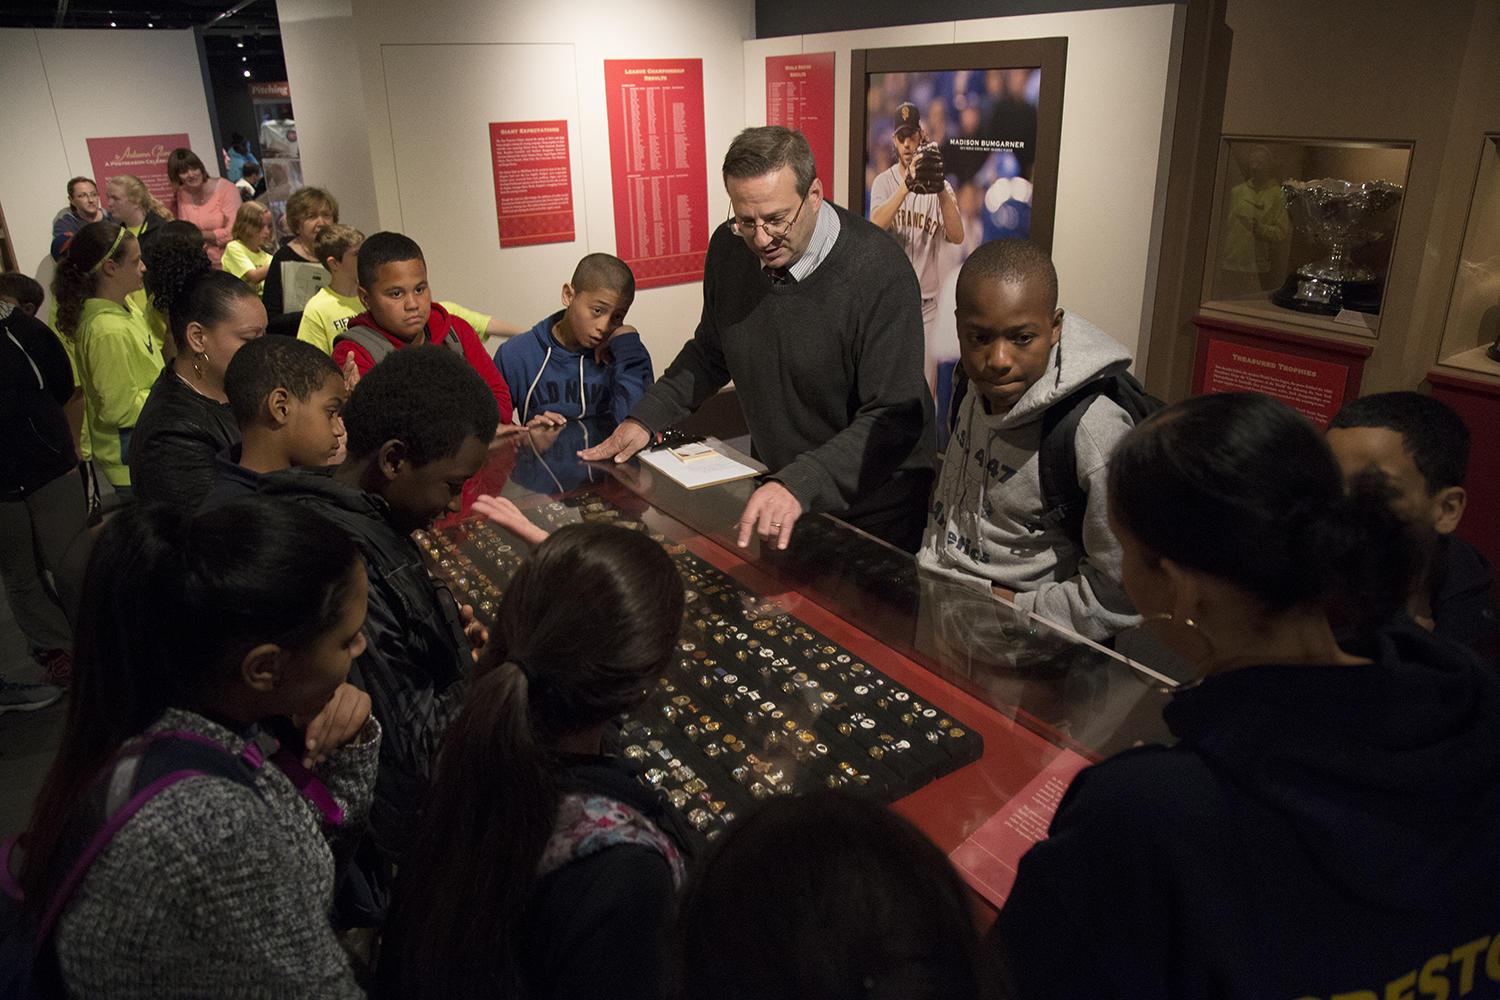 Manager of digital & outreach learning Bruce Markusen shows the World Series rings in the Hall of Fame collection to students visiting from the Creston Academy. (Milo Stewart Jr./National Baseball Hall of Fame and Museum)